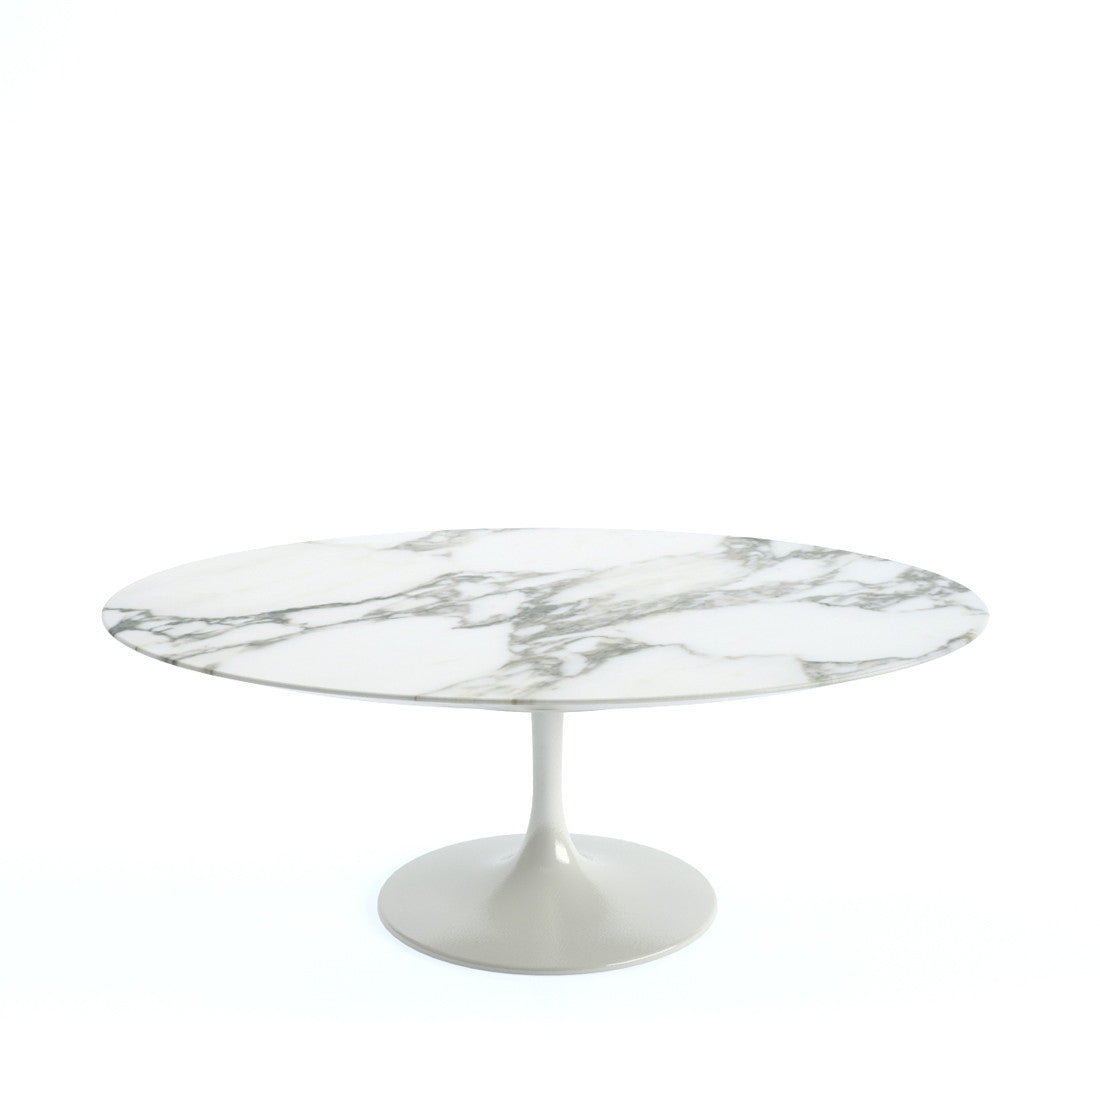 Tulip Coffee Table by Knoll haus